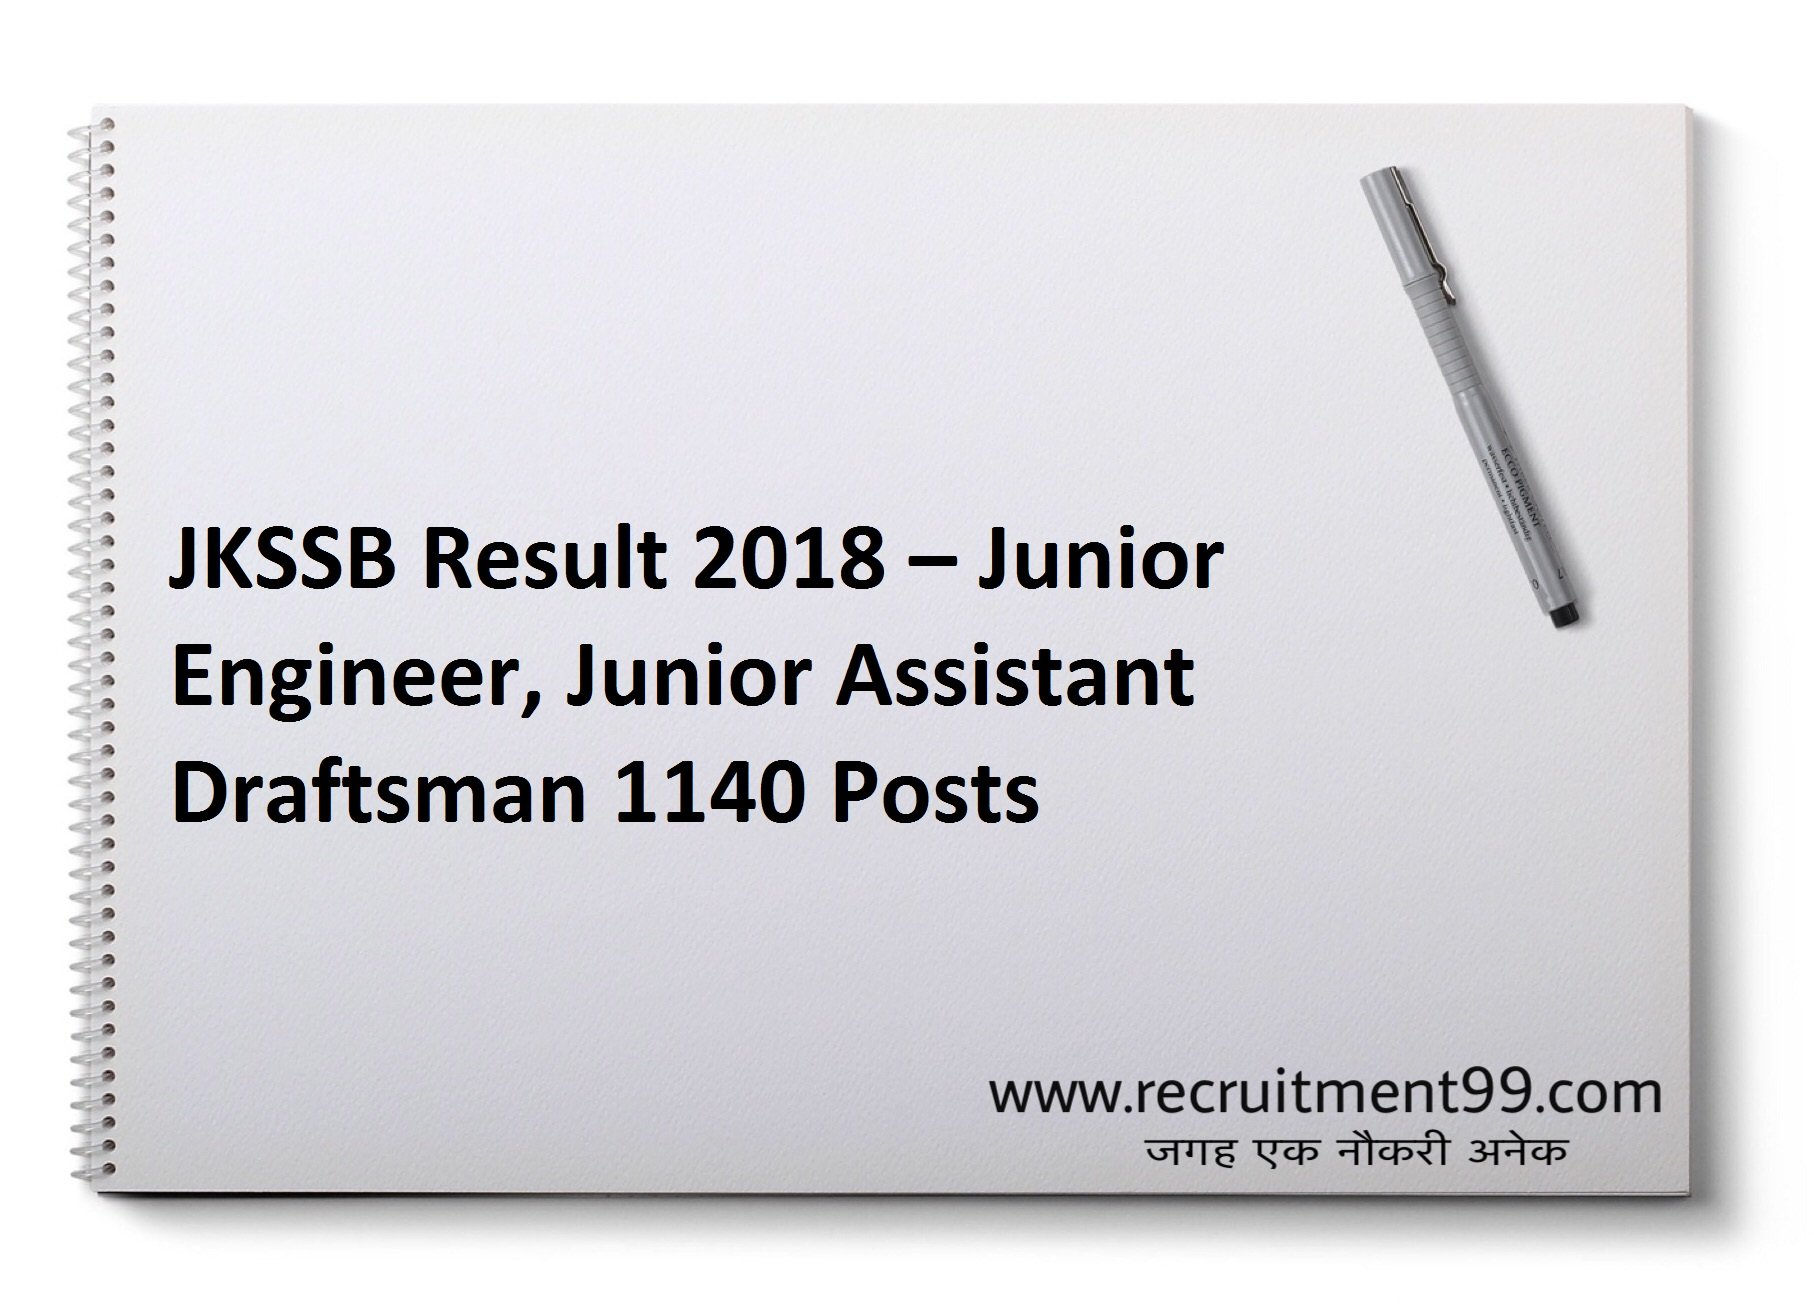 JKSSB Junior Engineer Junior Assistant Draftsman Recruitment Admit Card & Result 2018